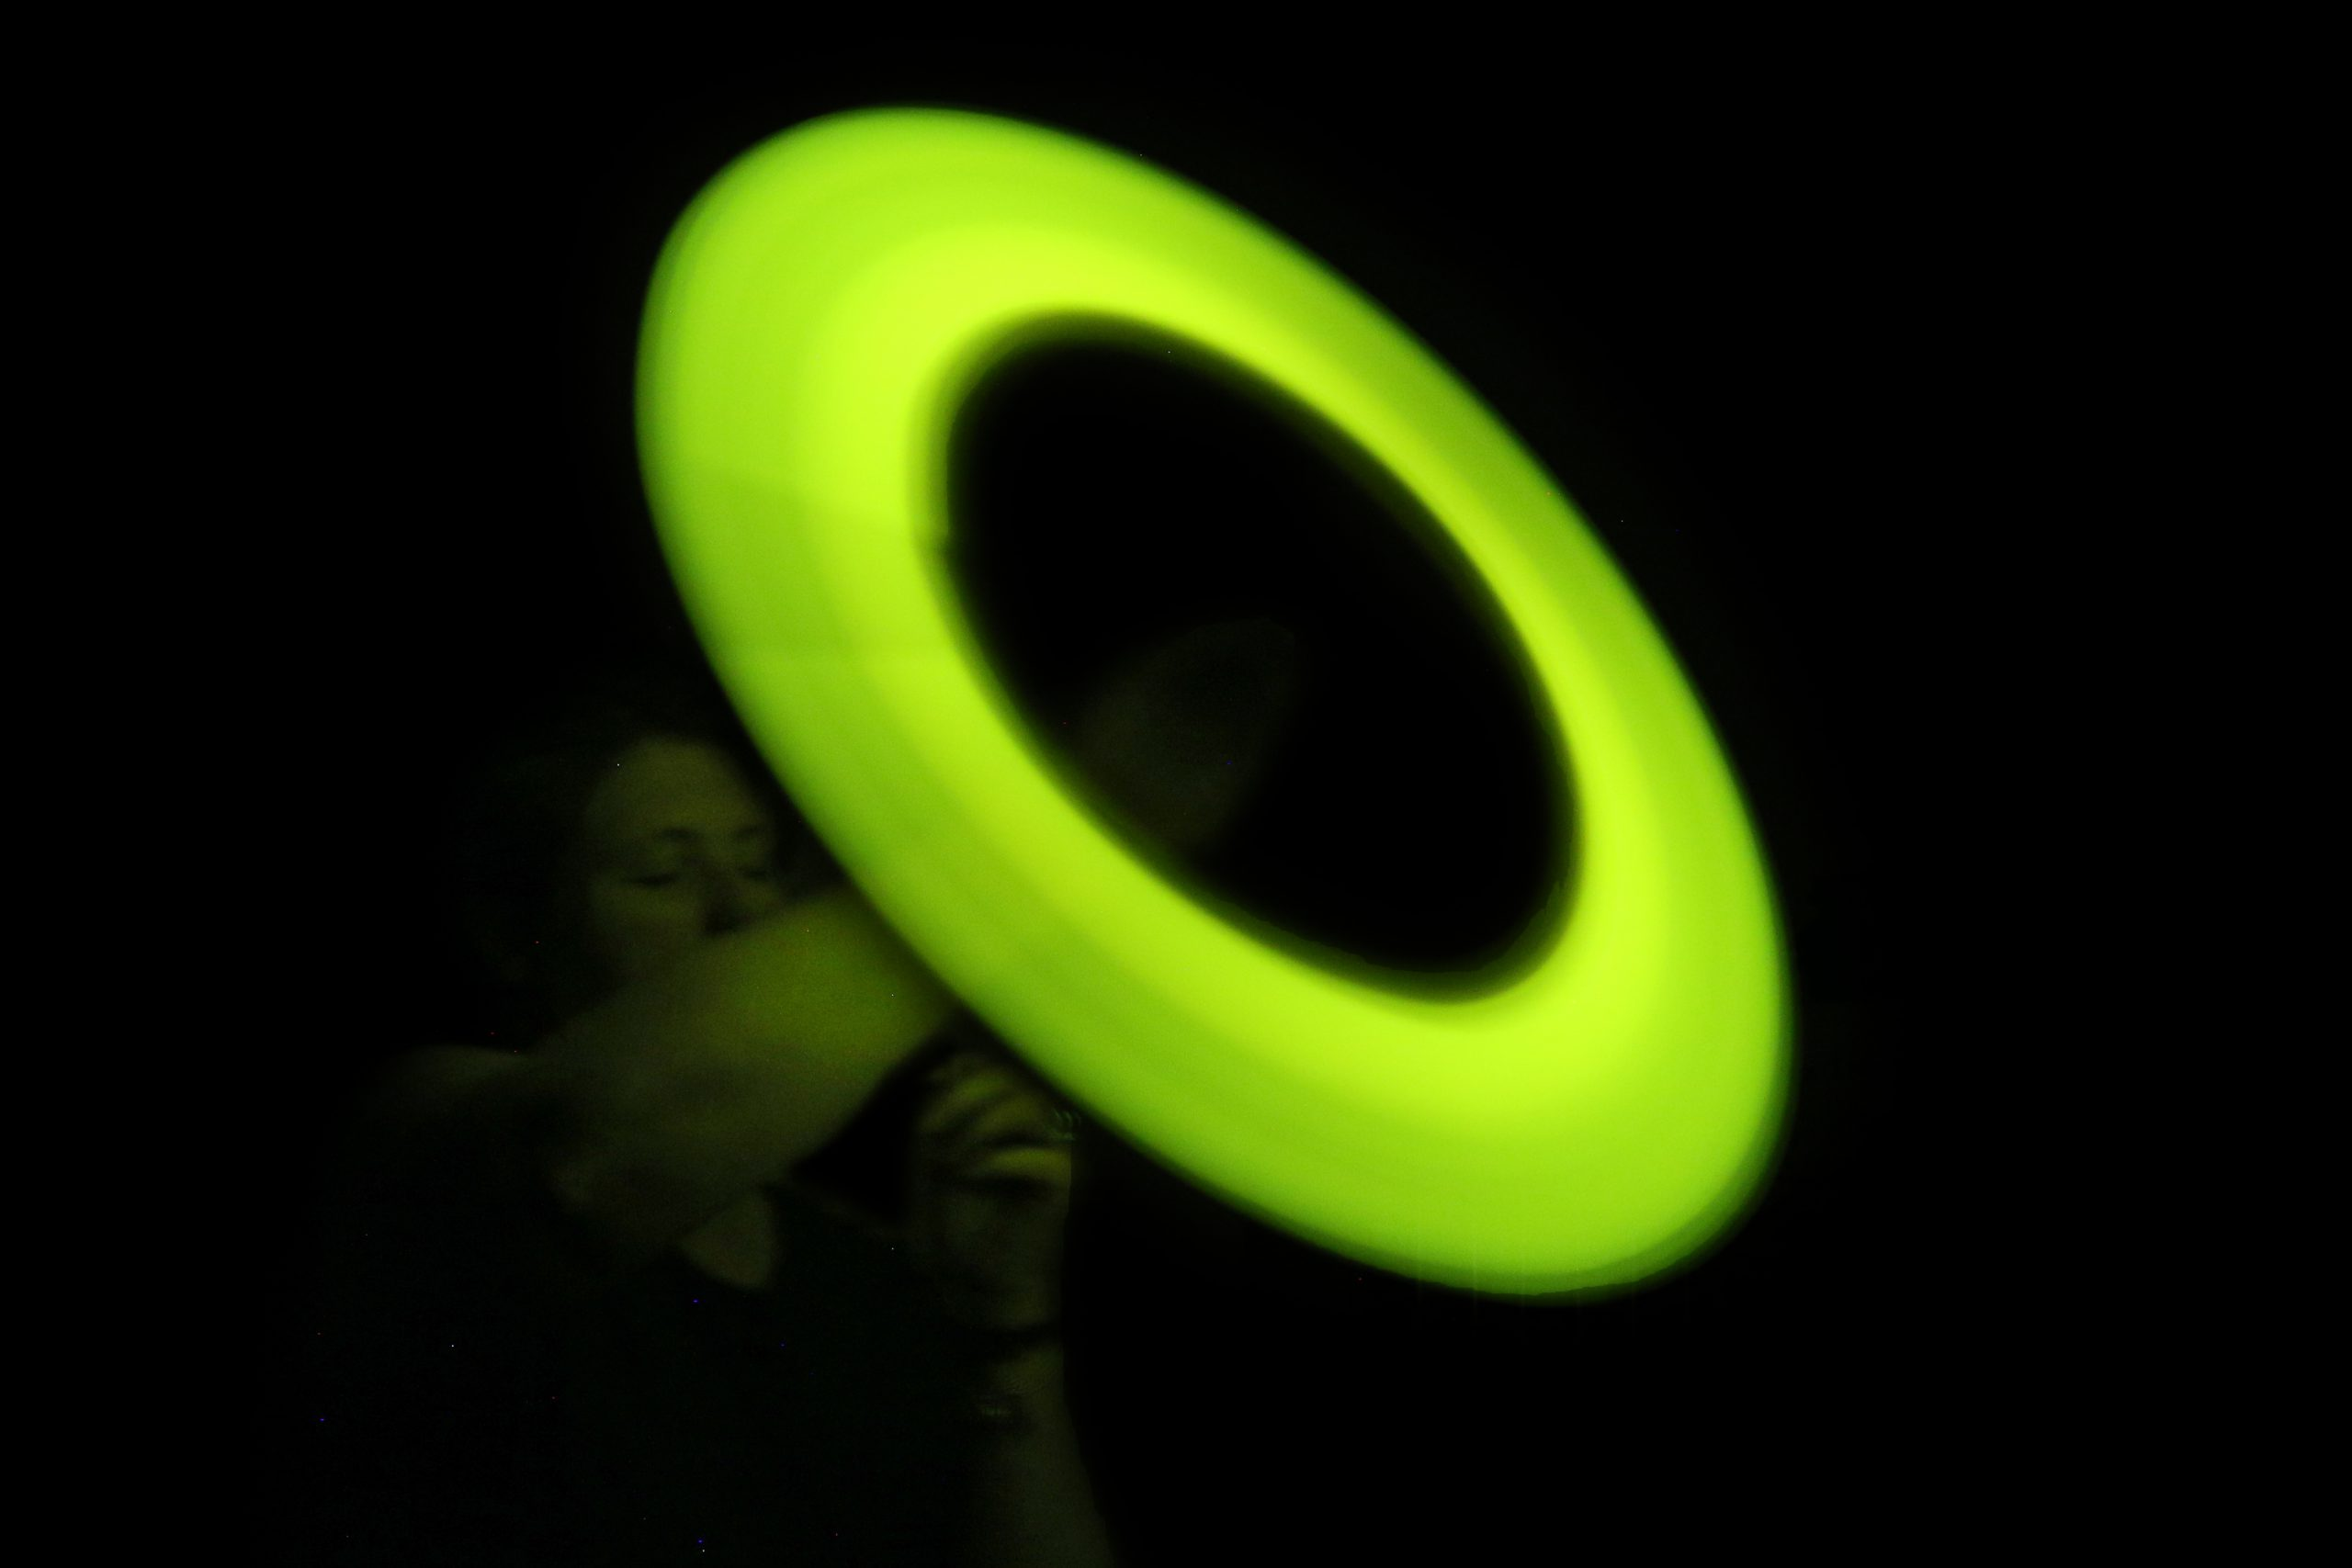 A glowing light stick being swung in a circle on a string creating the illusion of a large, glowing circle.